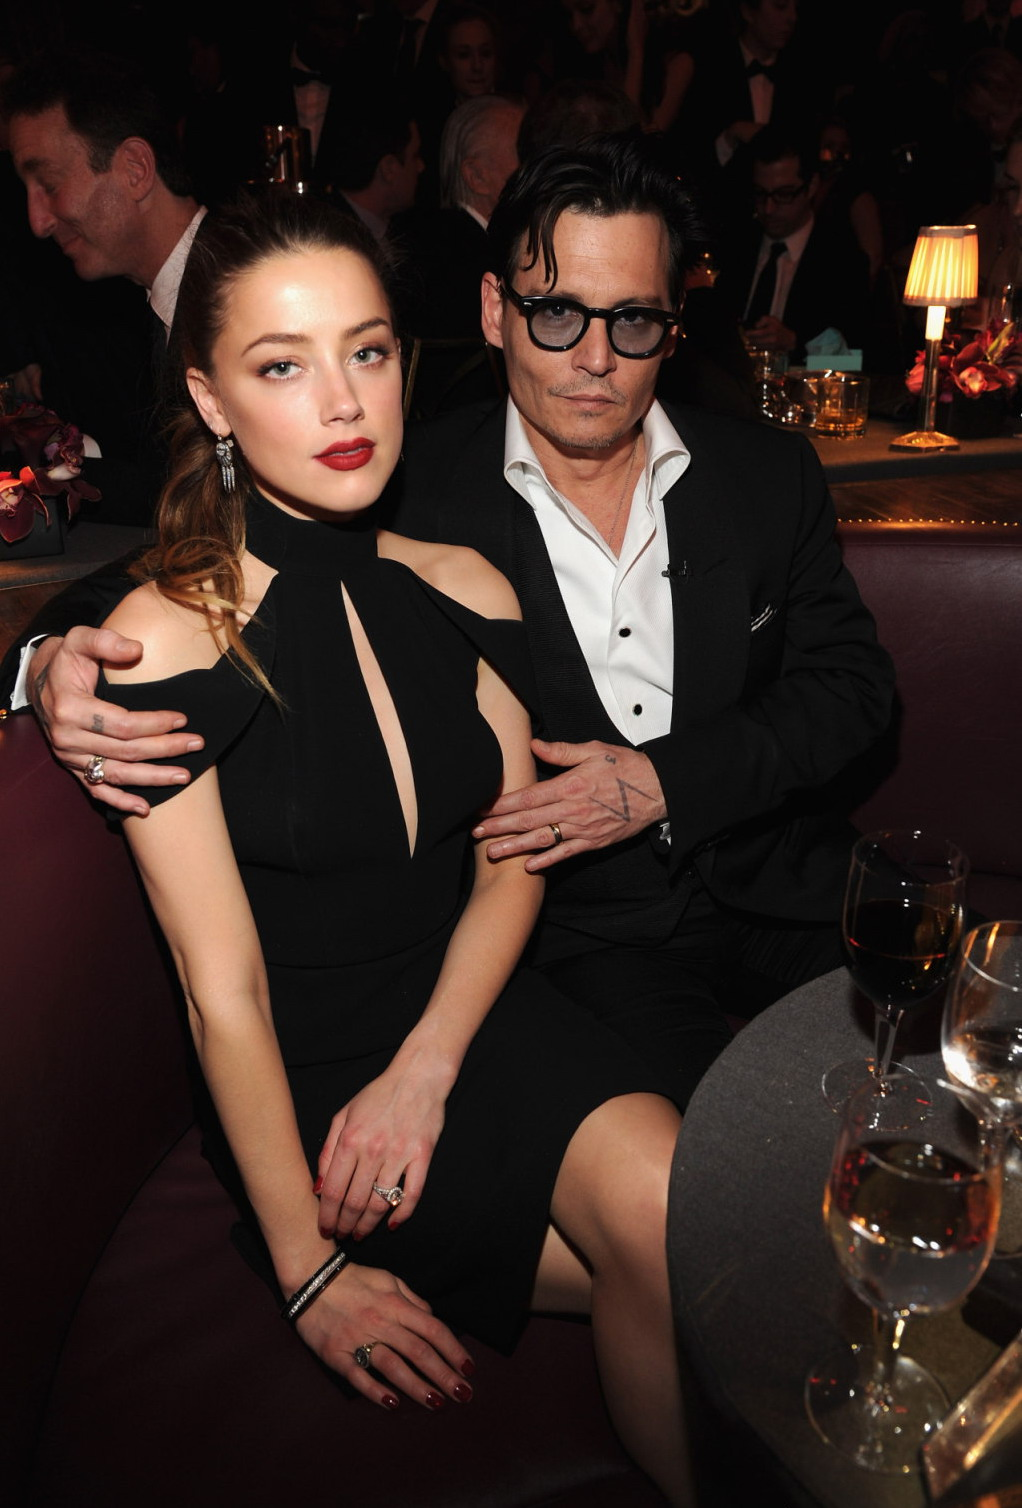 by hirobillyssk at 21 33Johnny Depp Amber Heard 2014